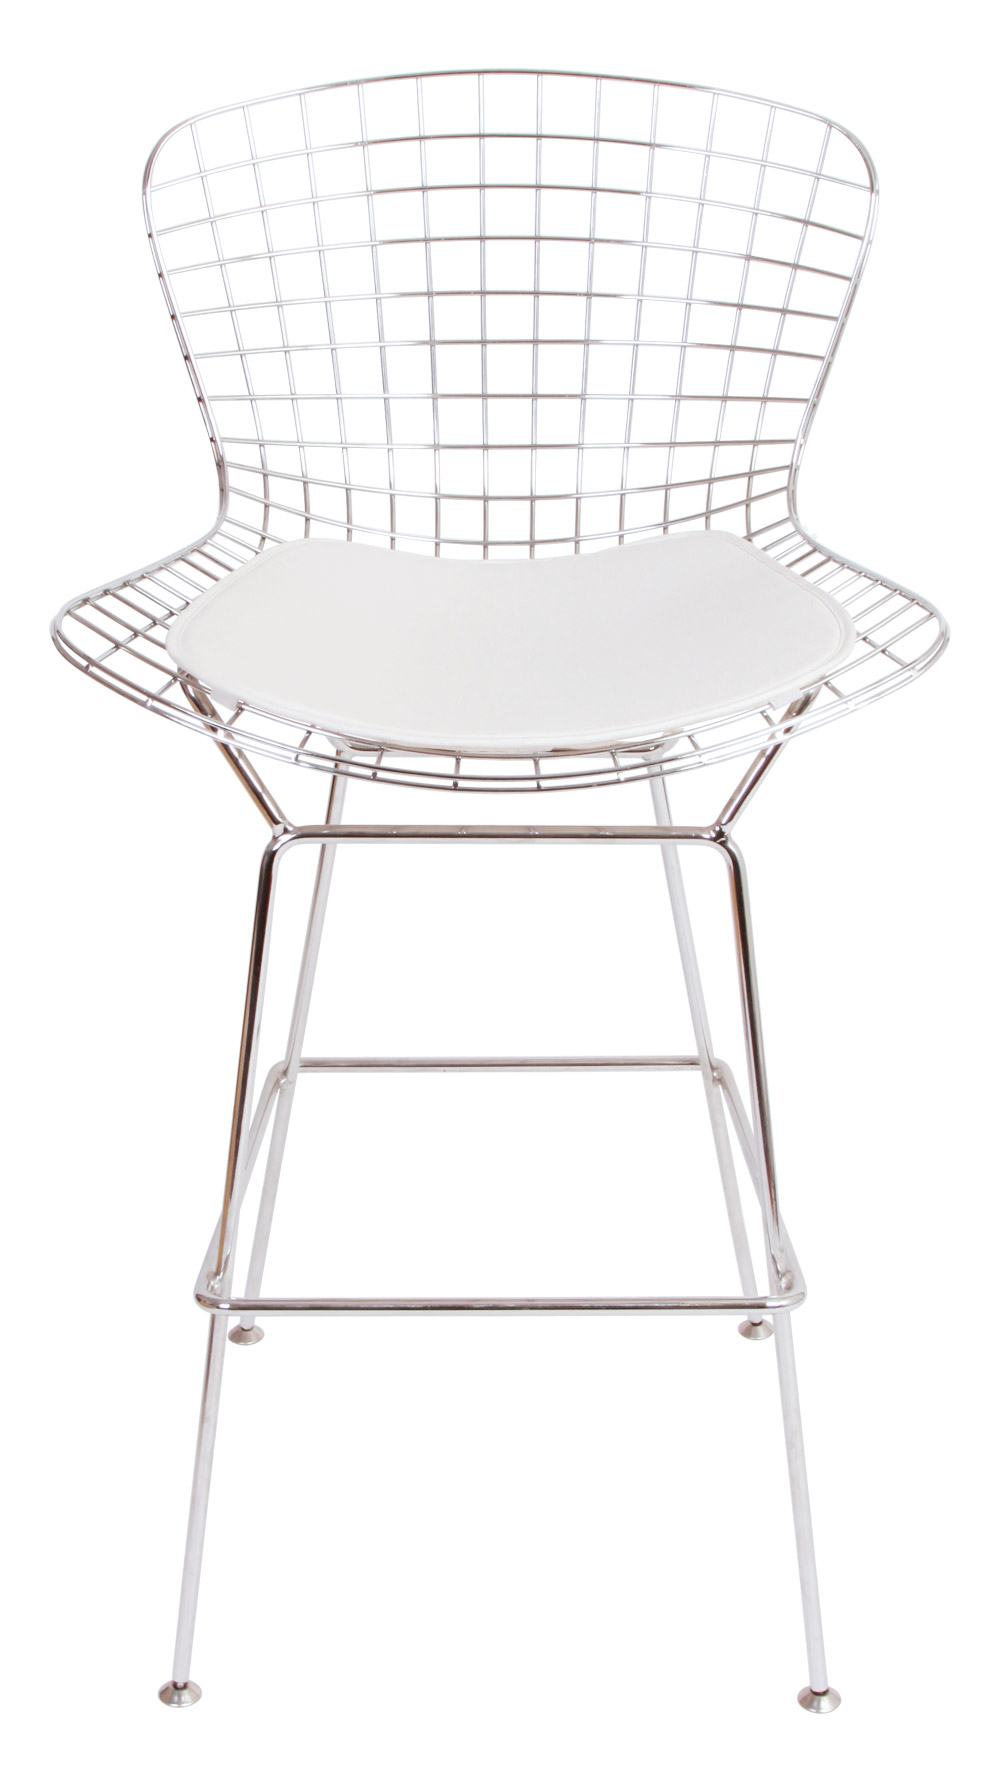 Designapplause bertoia bar stool harry bertoia for Bertoia stoel